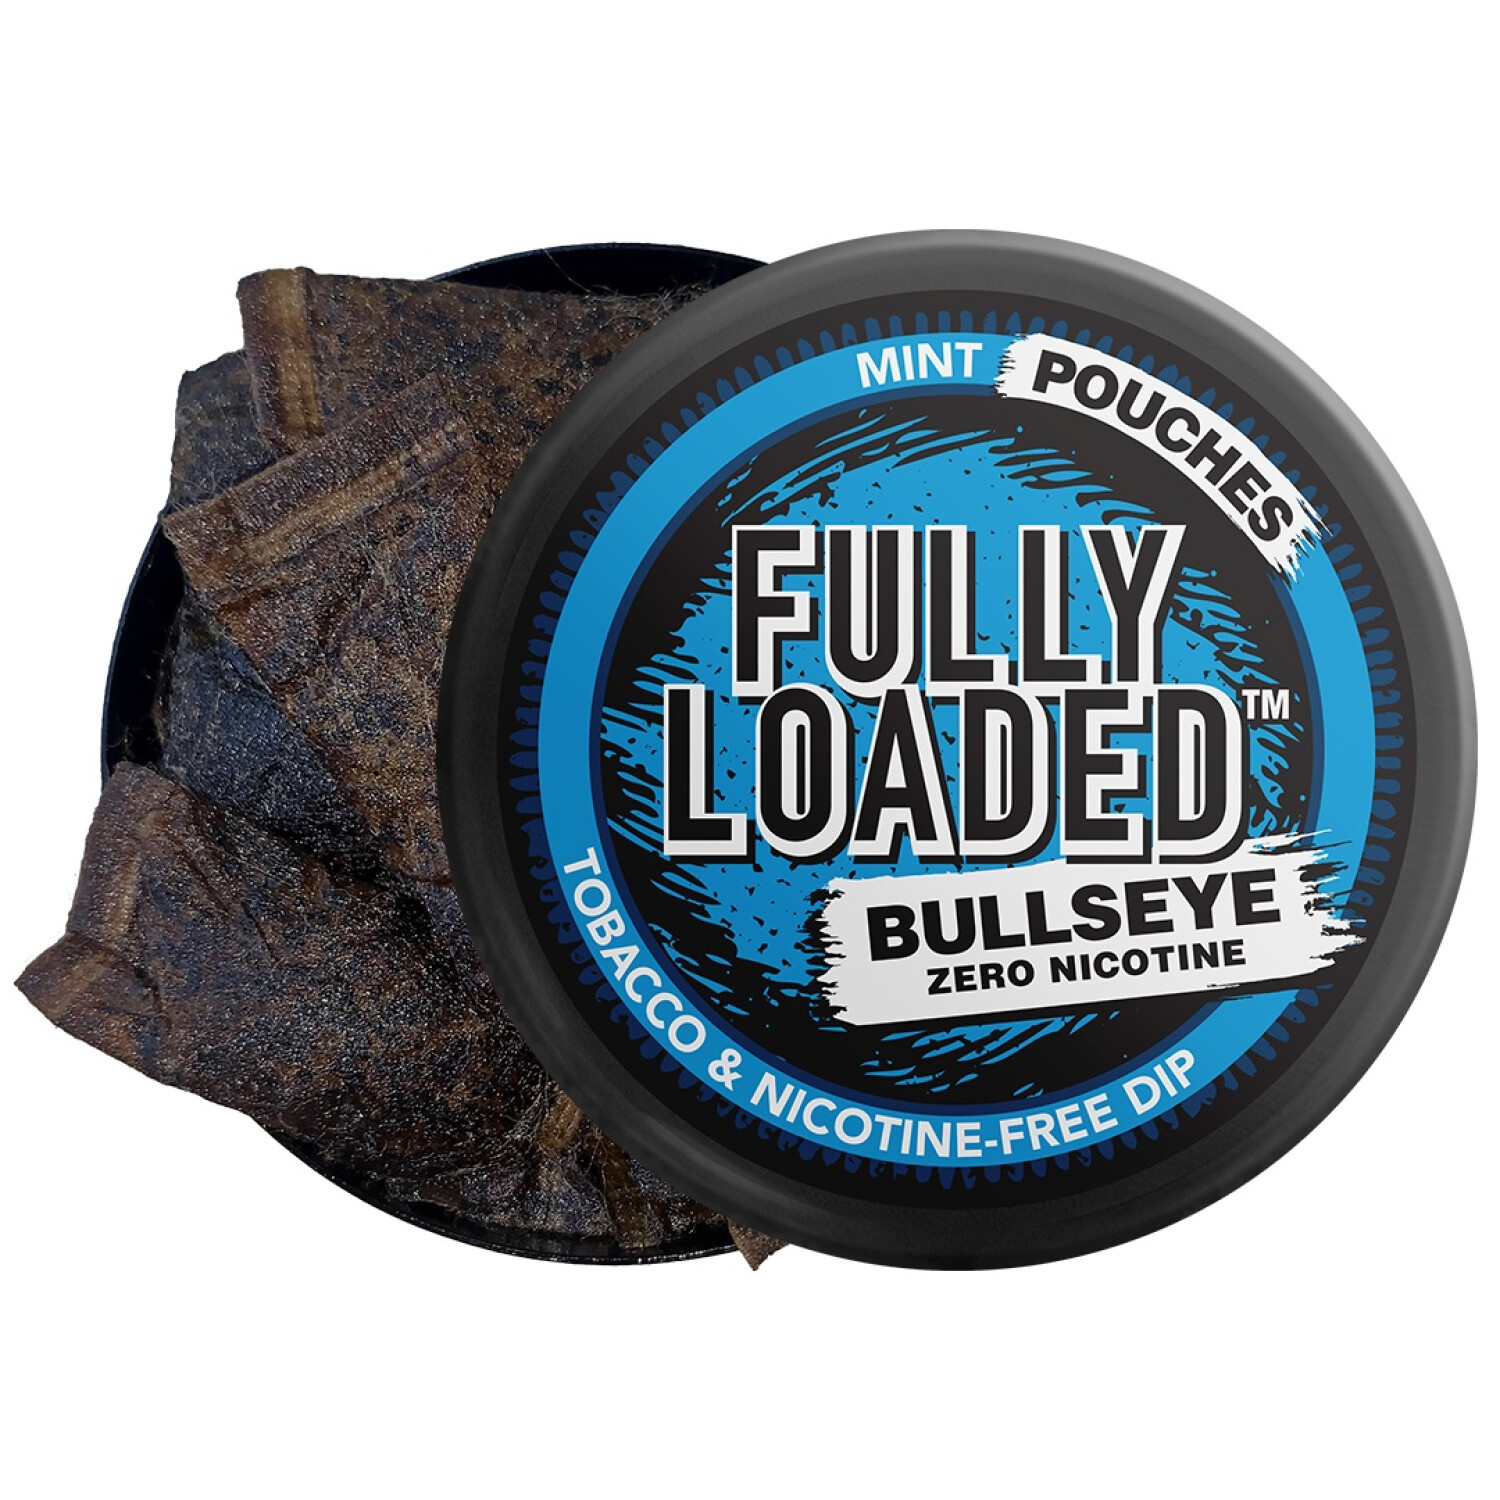 Fully Loaded Chew Tobacco and Nicotine Free Mint Bullseye Pouches Bold Flavor, Chewing Alternative-5 Cans